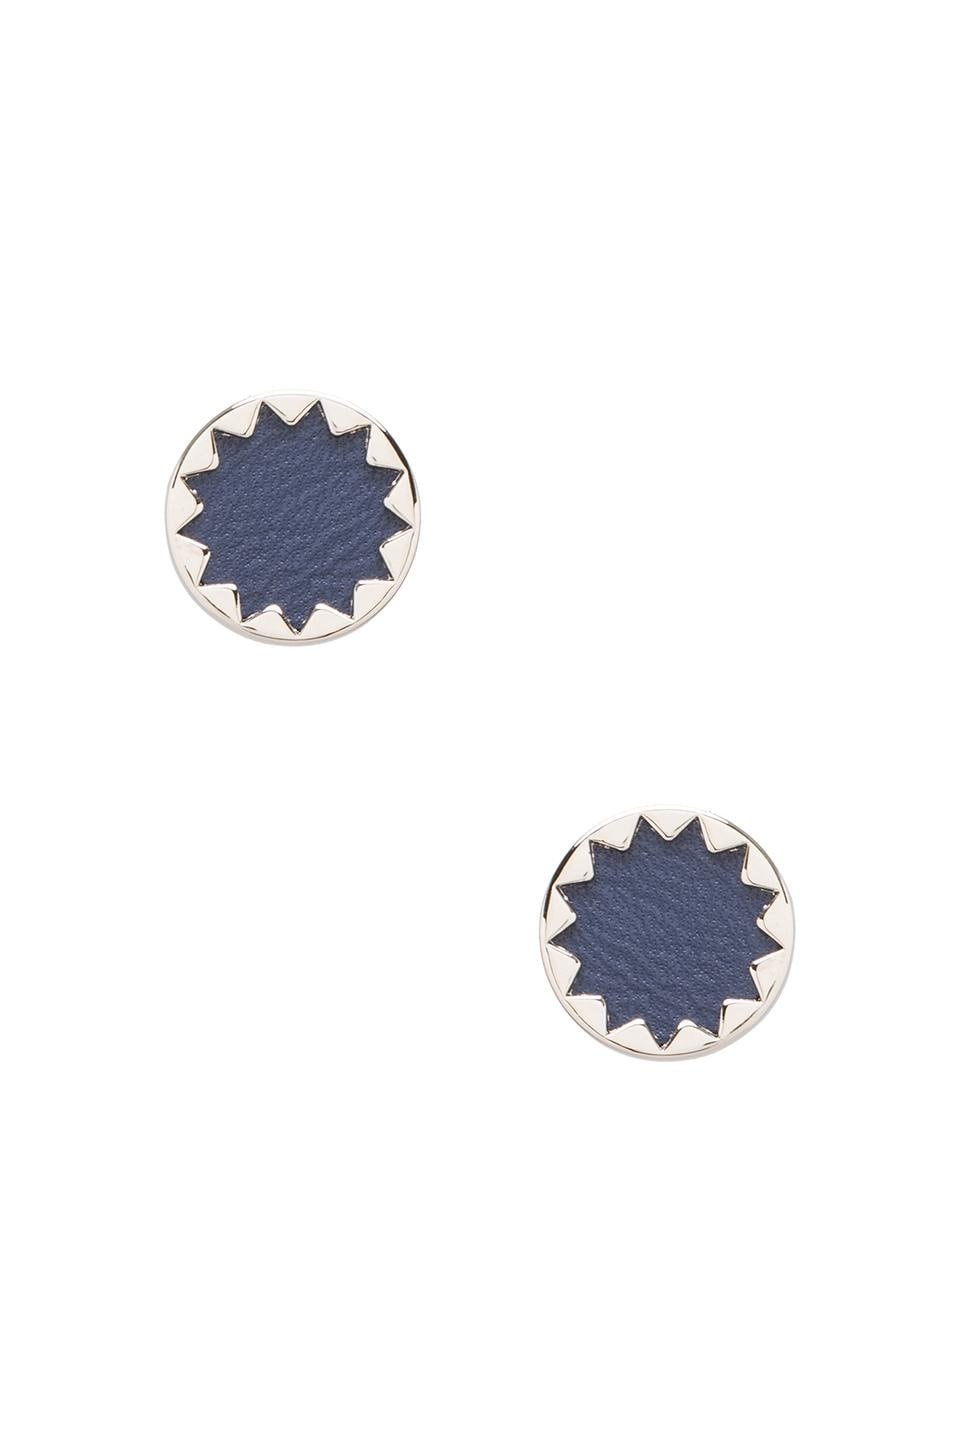 House of Harlow 1960 House of Harlow Sunburst Button Earrings Leather in Silver Tone Navy